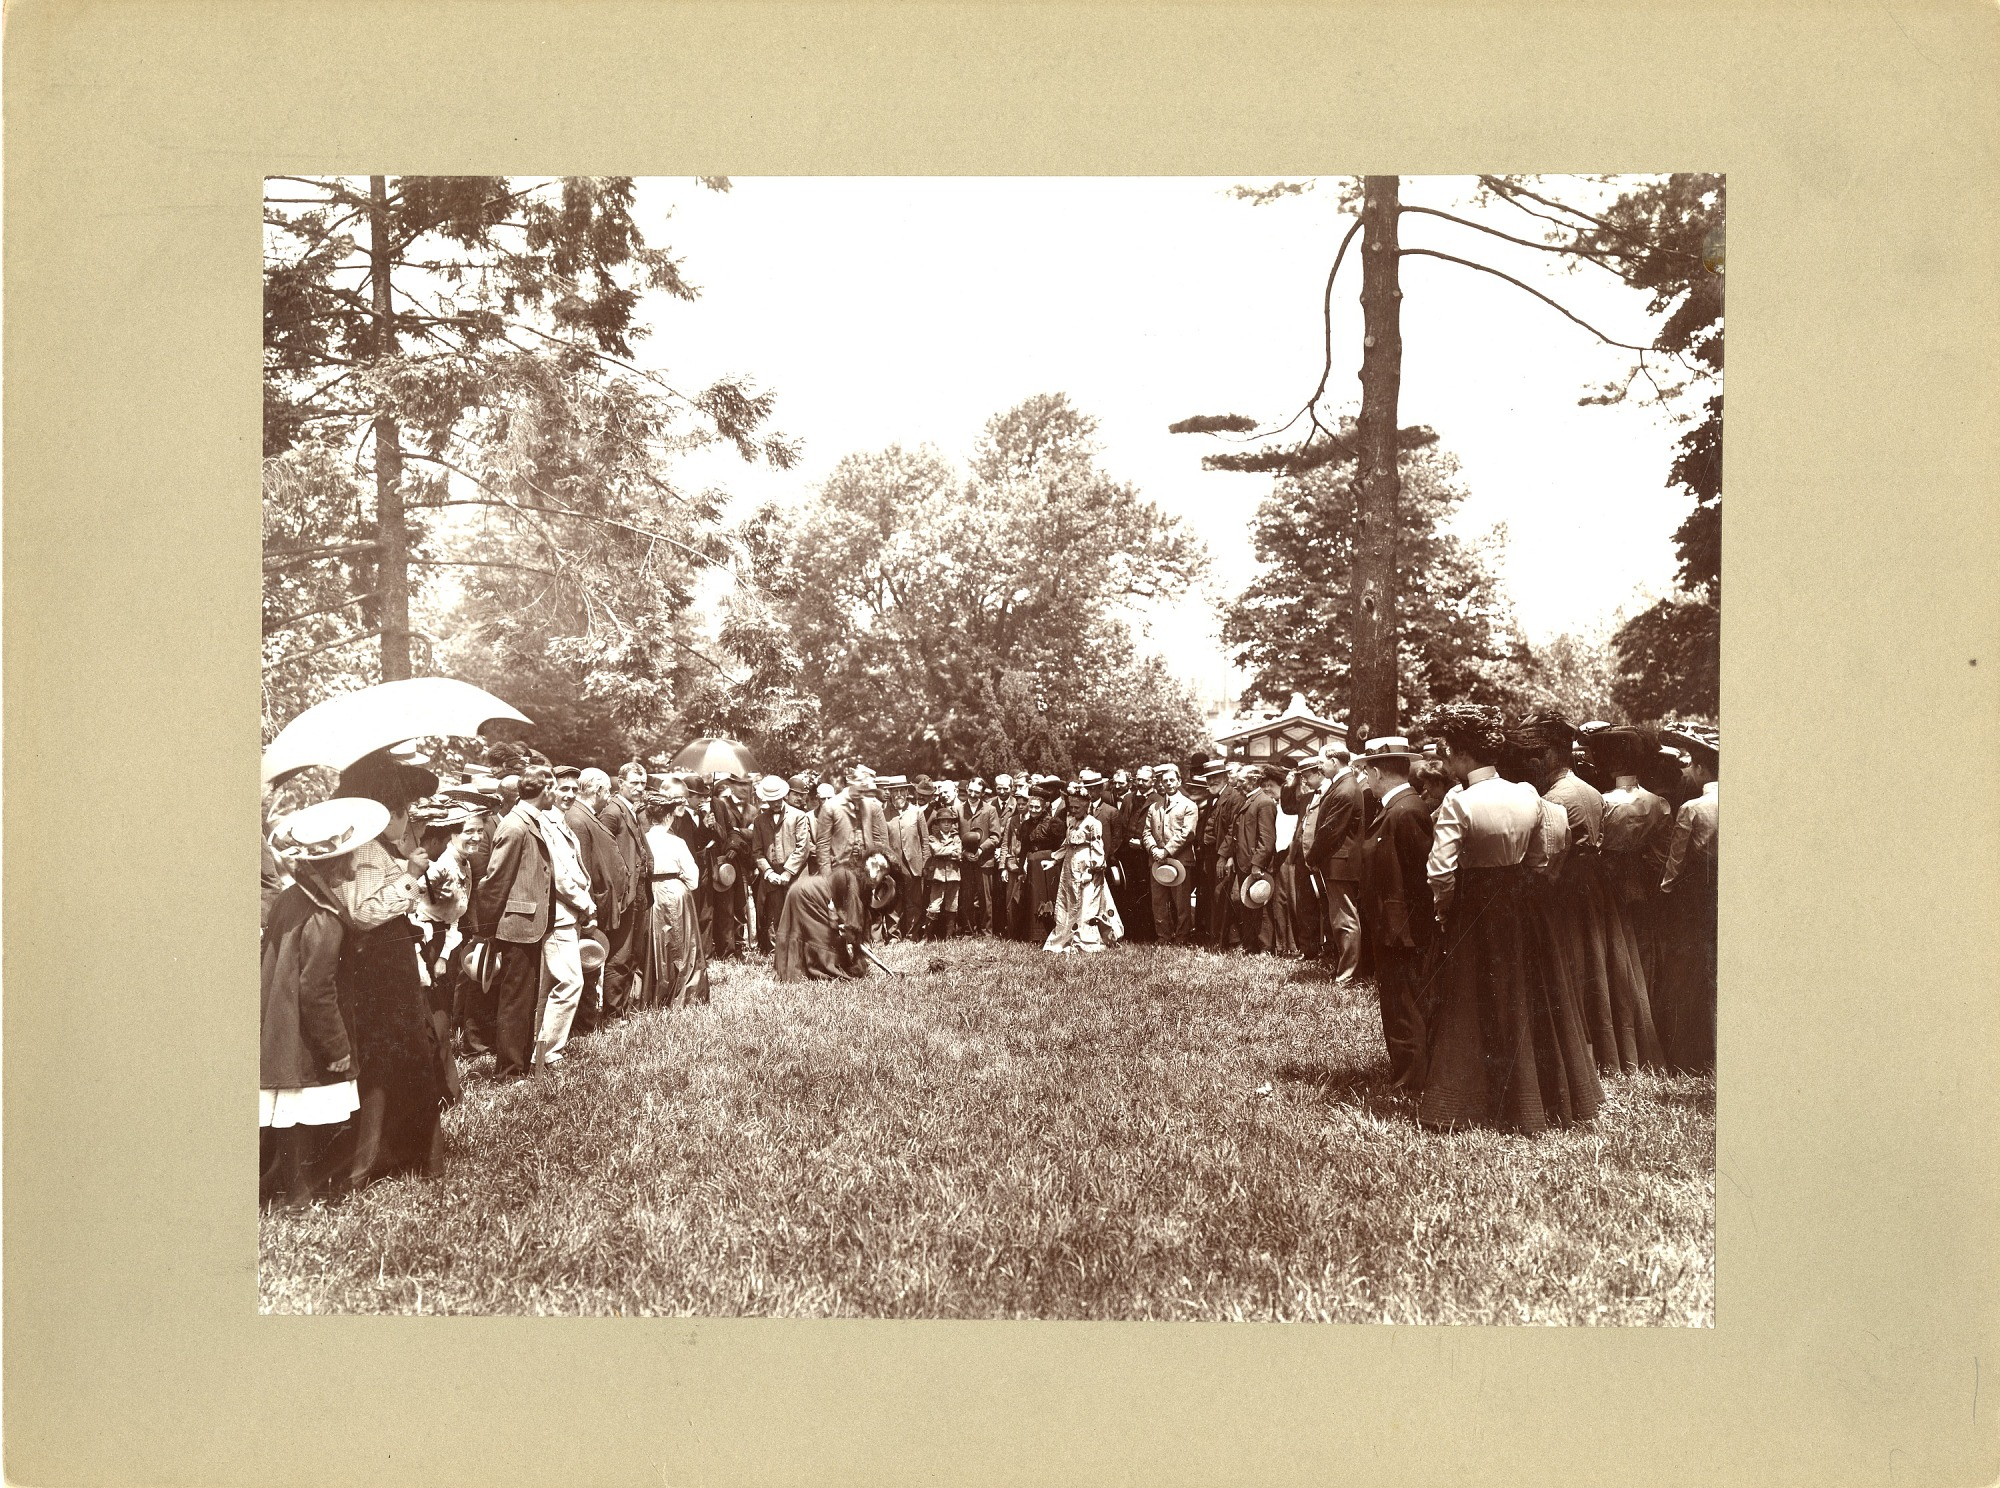 Groundbreaking for the Natural History Building